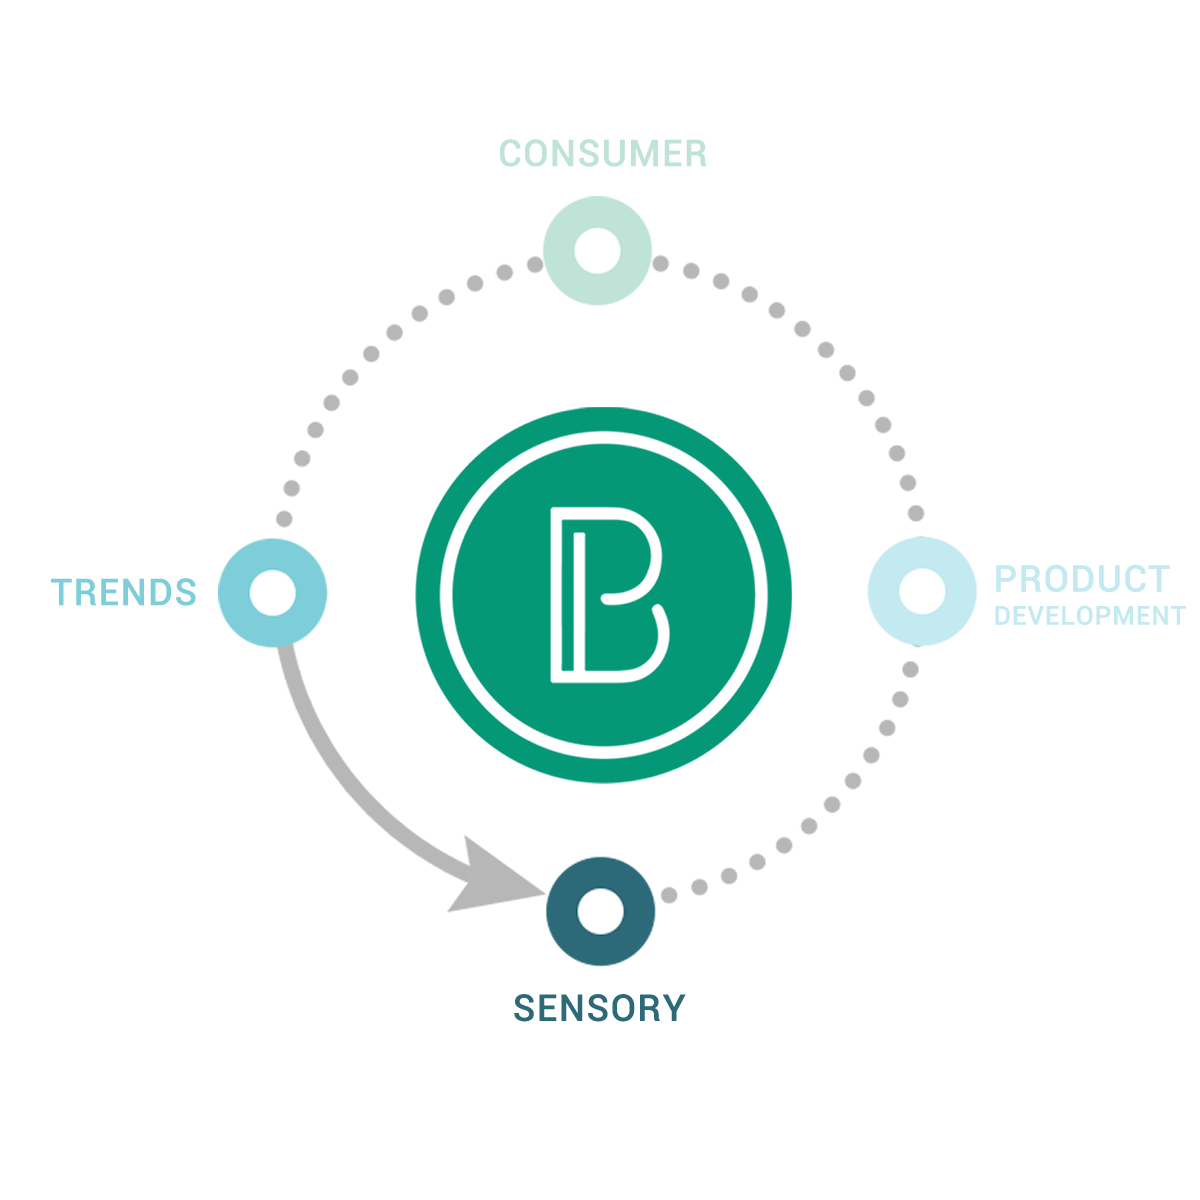 Streamlined and nimble - Brisan has diverse product understanding and development disciplines under one roof, so when clients outsource to us instead of numerous third-parties, answers are faster because projects are streamlined.